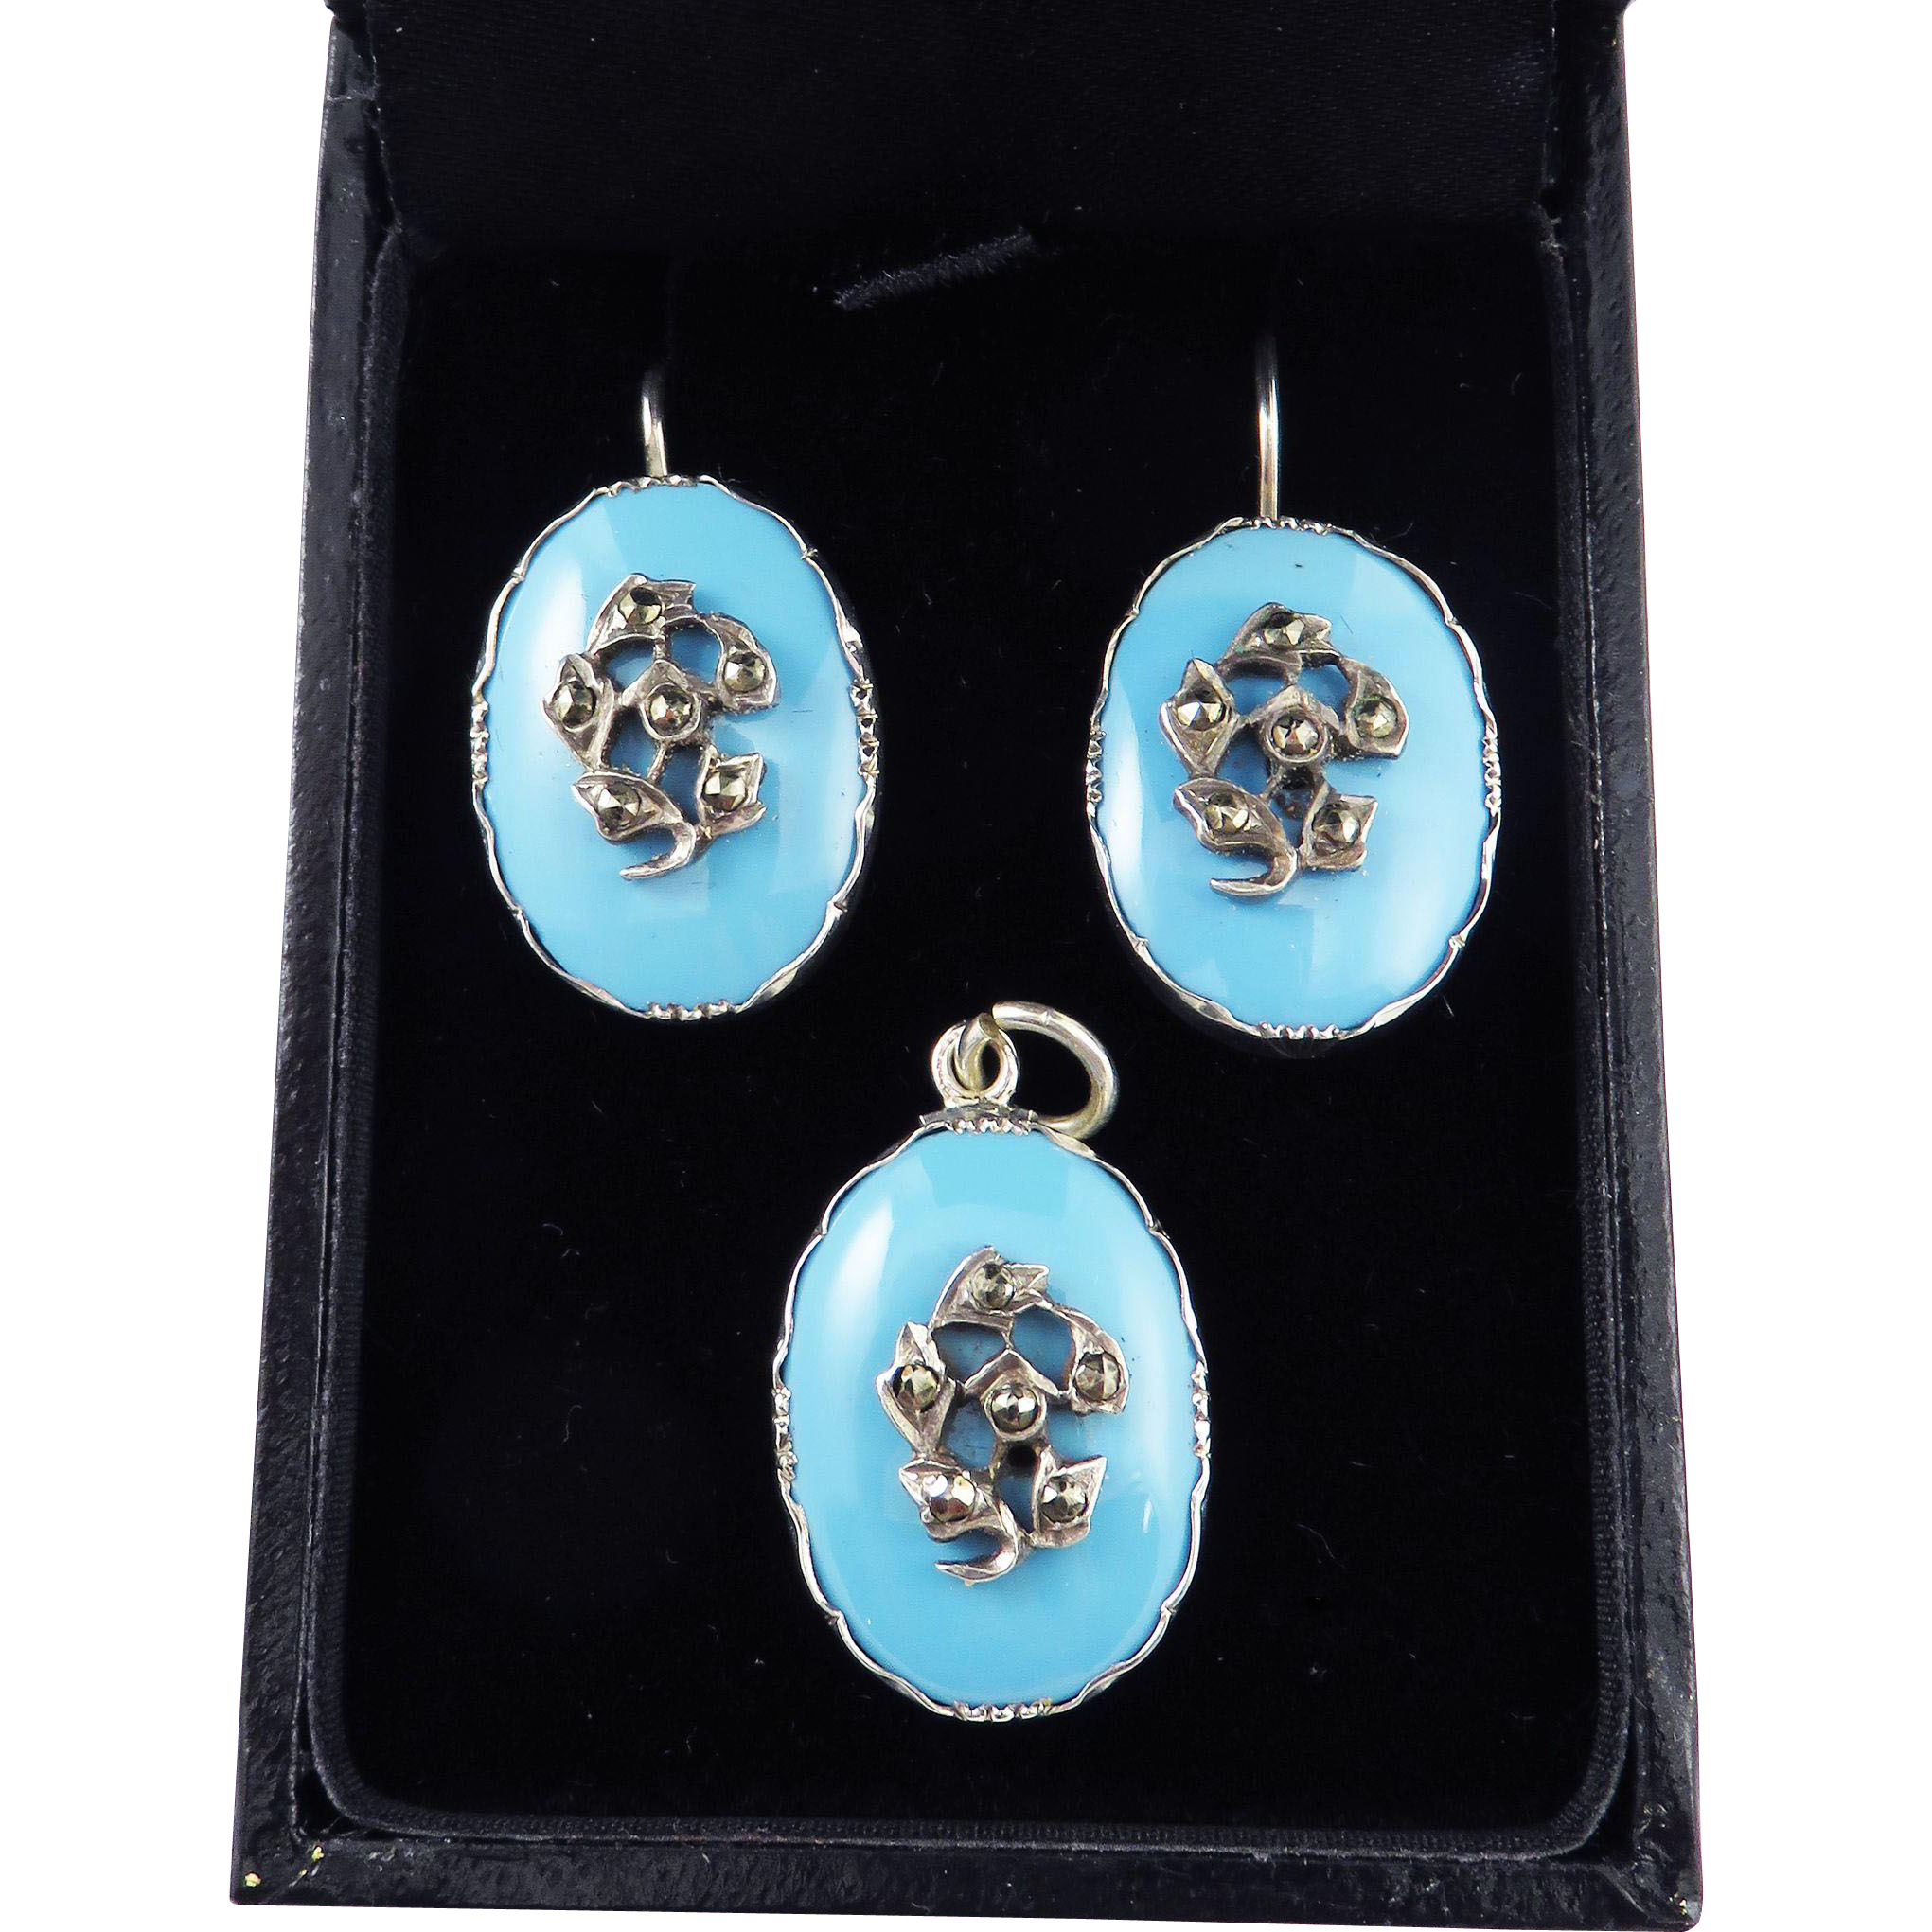 DELIGHTFUL Regency Robin's Egg Blue/Marcasite/Sterling Demi-Parure, Earrings & Pendant, c.1820!